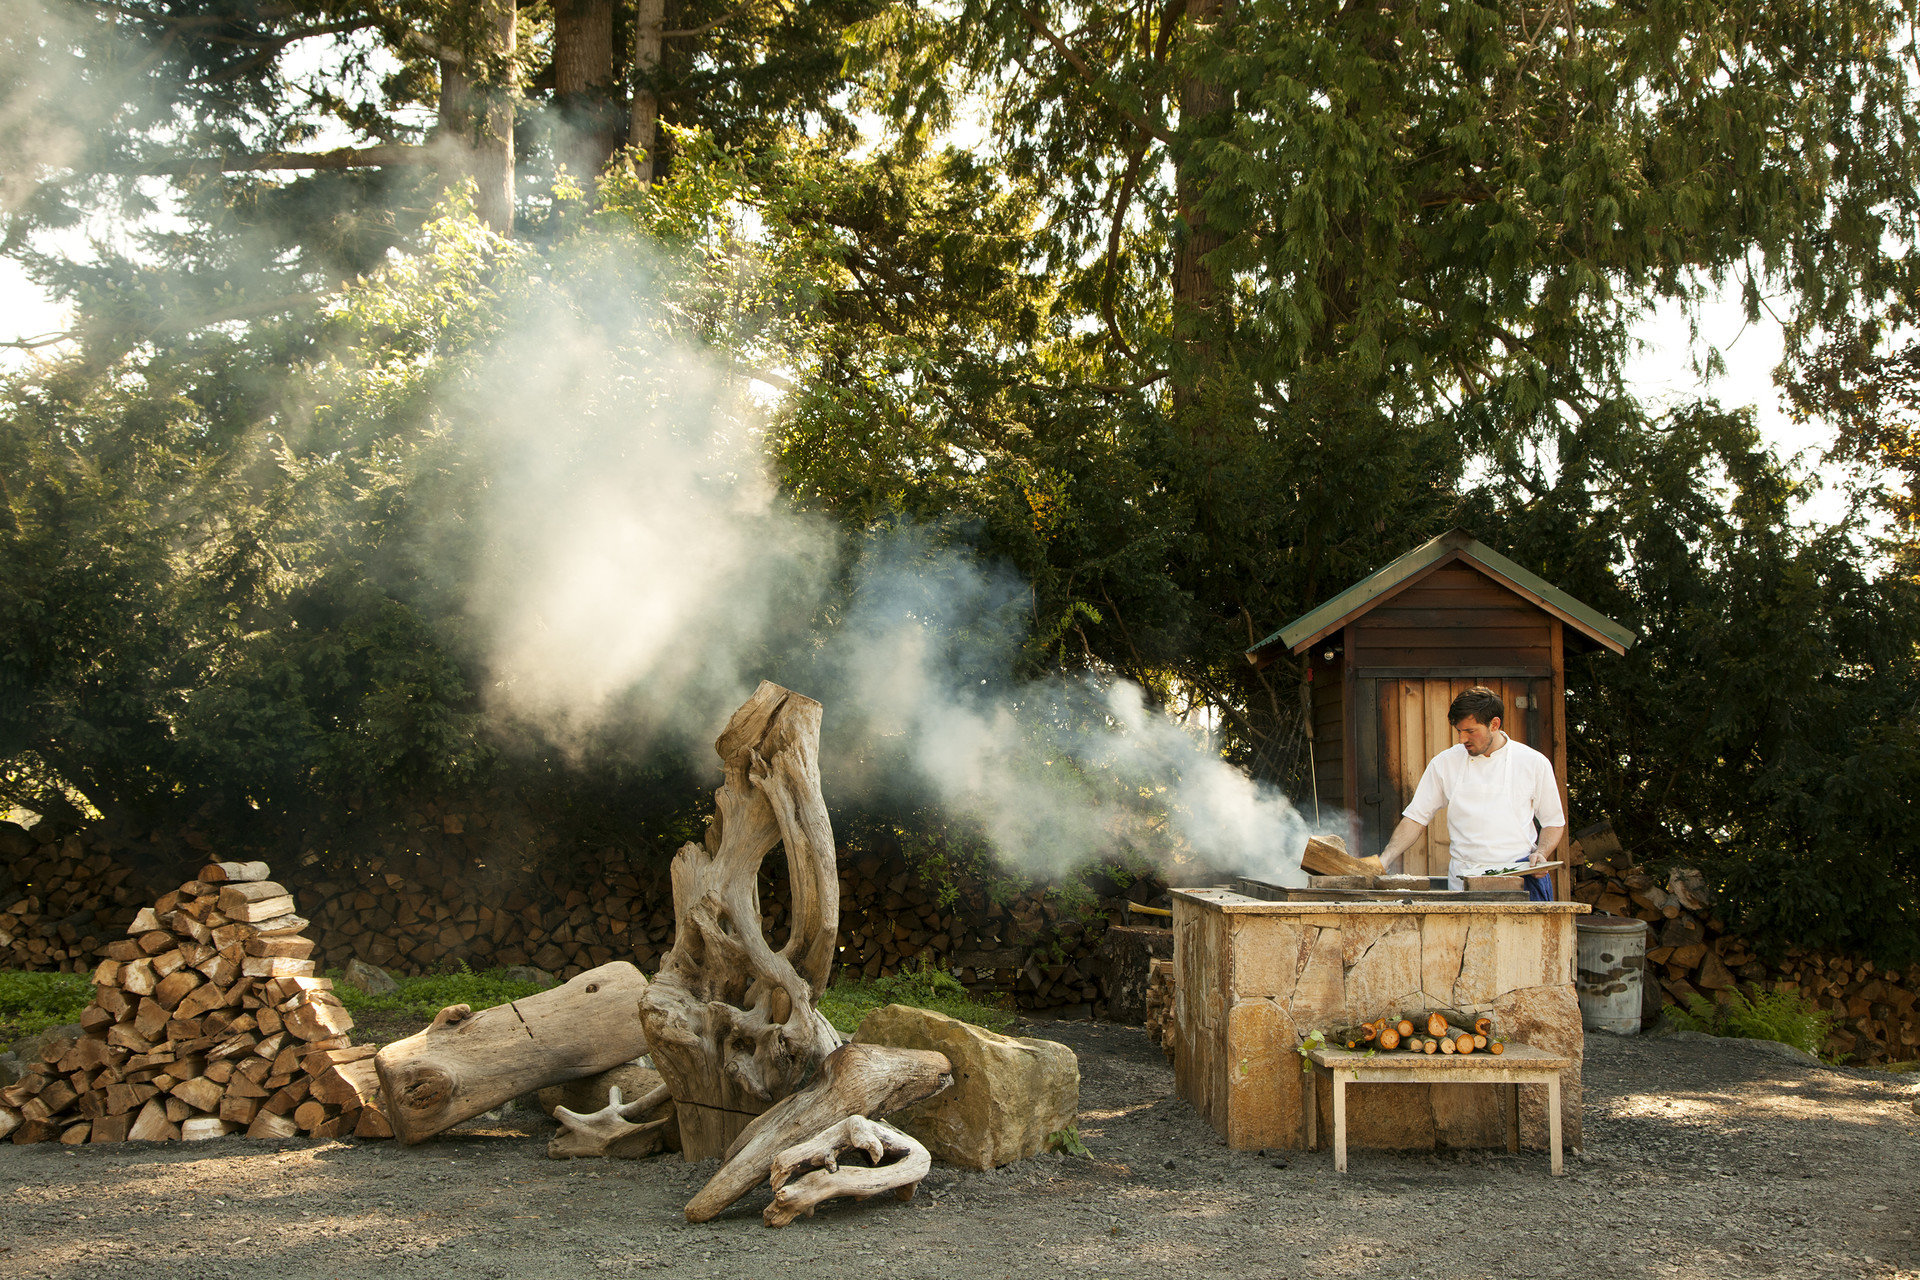 calm chef cooking Food + Drink Forest Garden Greenery grilling Hotels isolation Nature outdoor cooking Outdoors people remote Rustic serene smoke sunlight trees Trip Ideas tree outdoor backyard autumn park wood spring